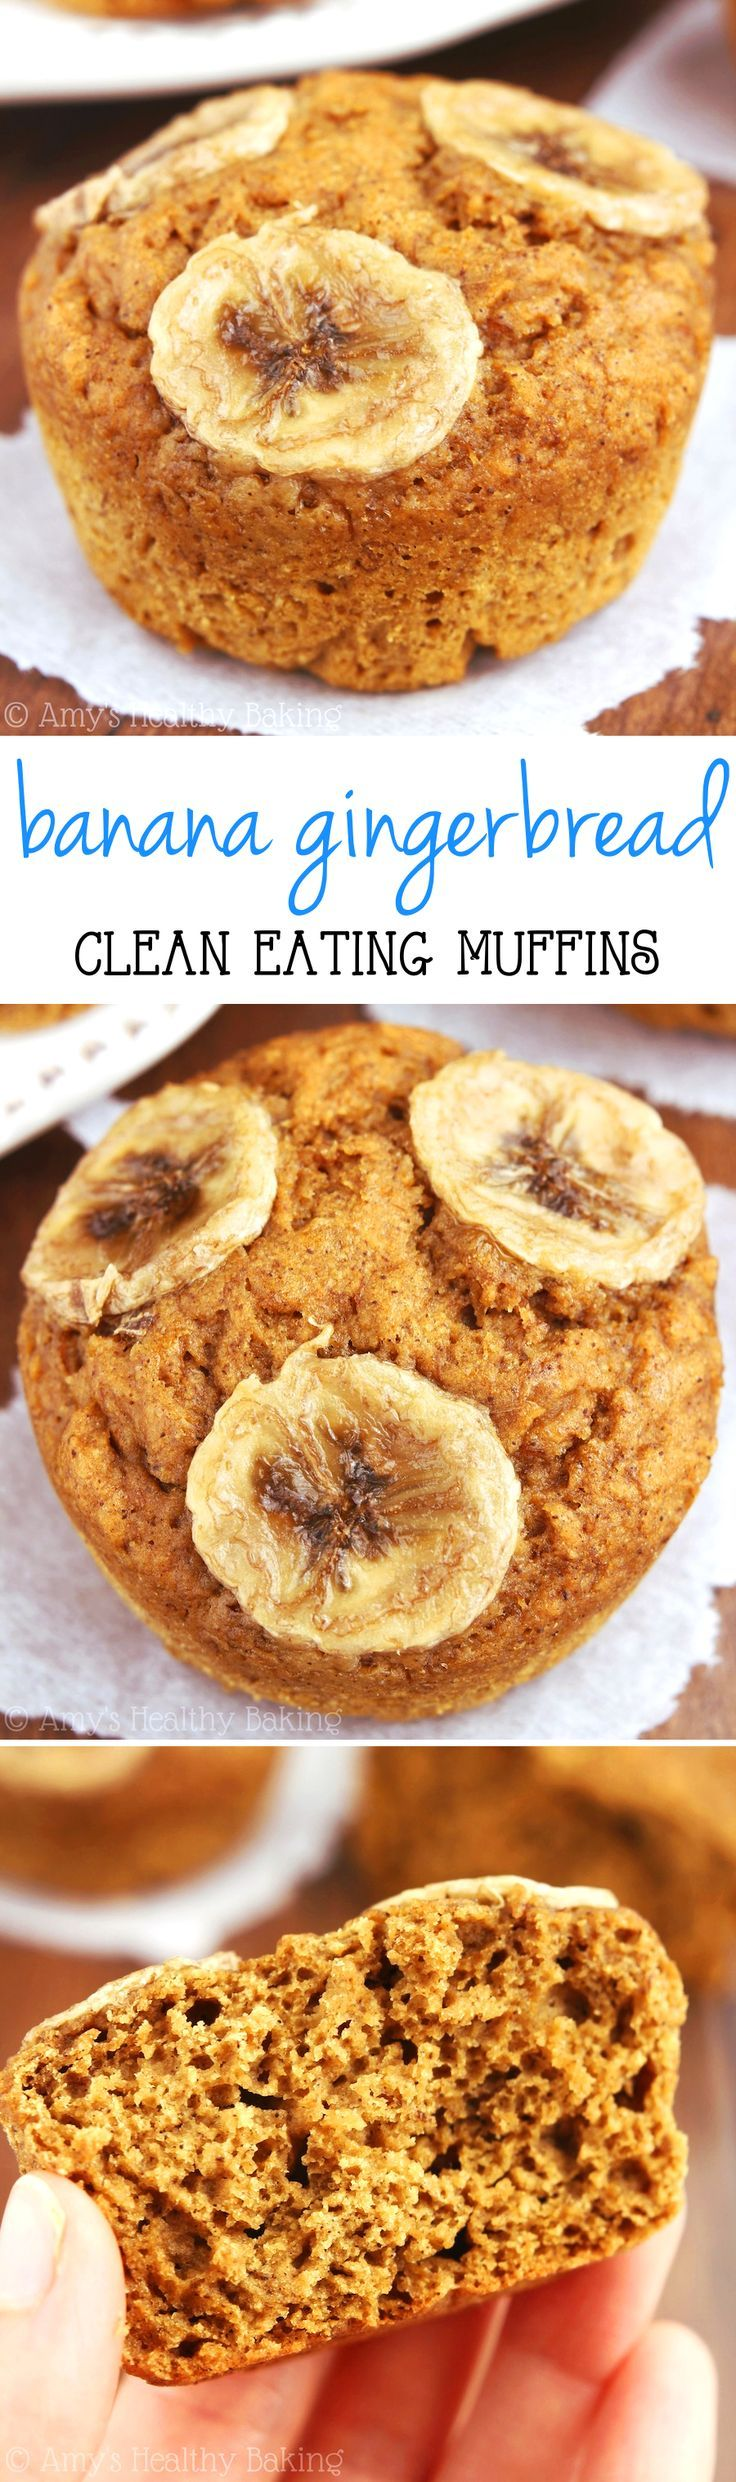 Healthy Banana Gingerbread Muffins -- they practically taste like cupcakes for breakfast! Super easy & 4g+ of protein!